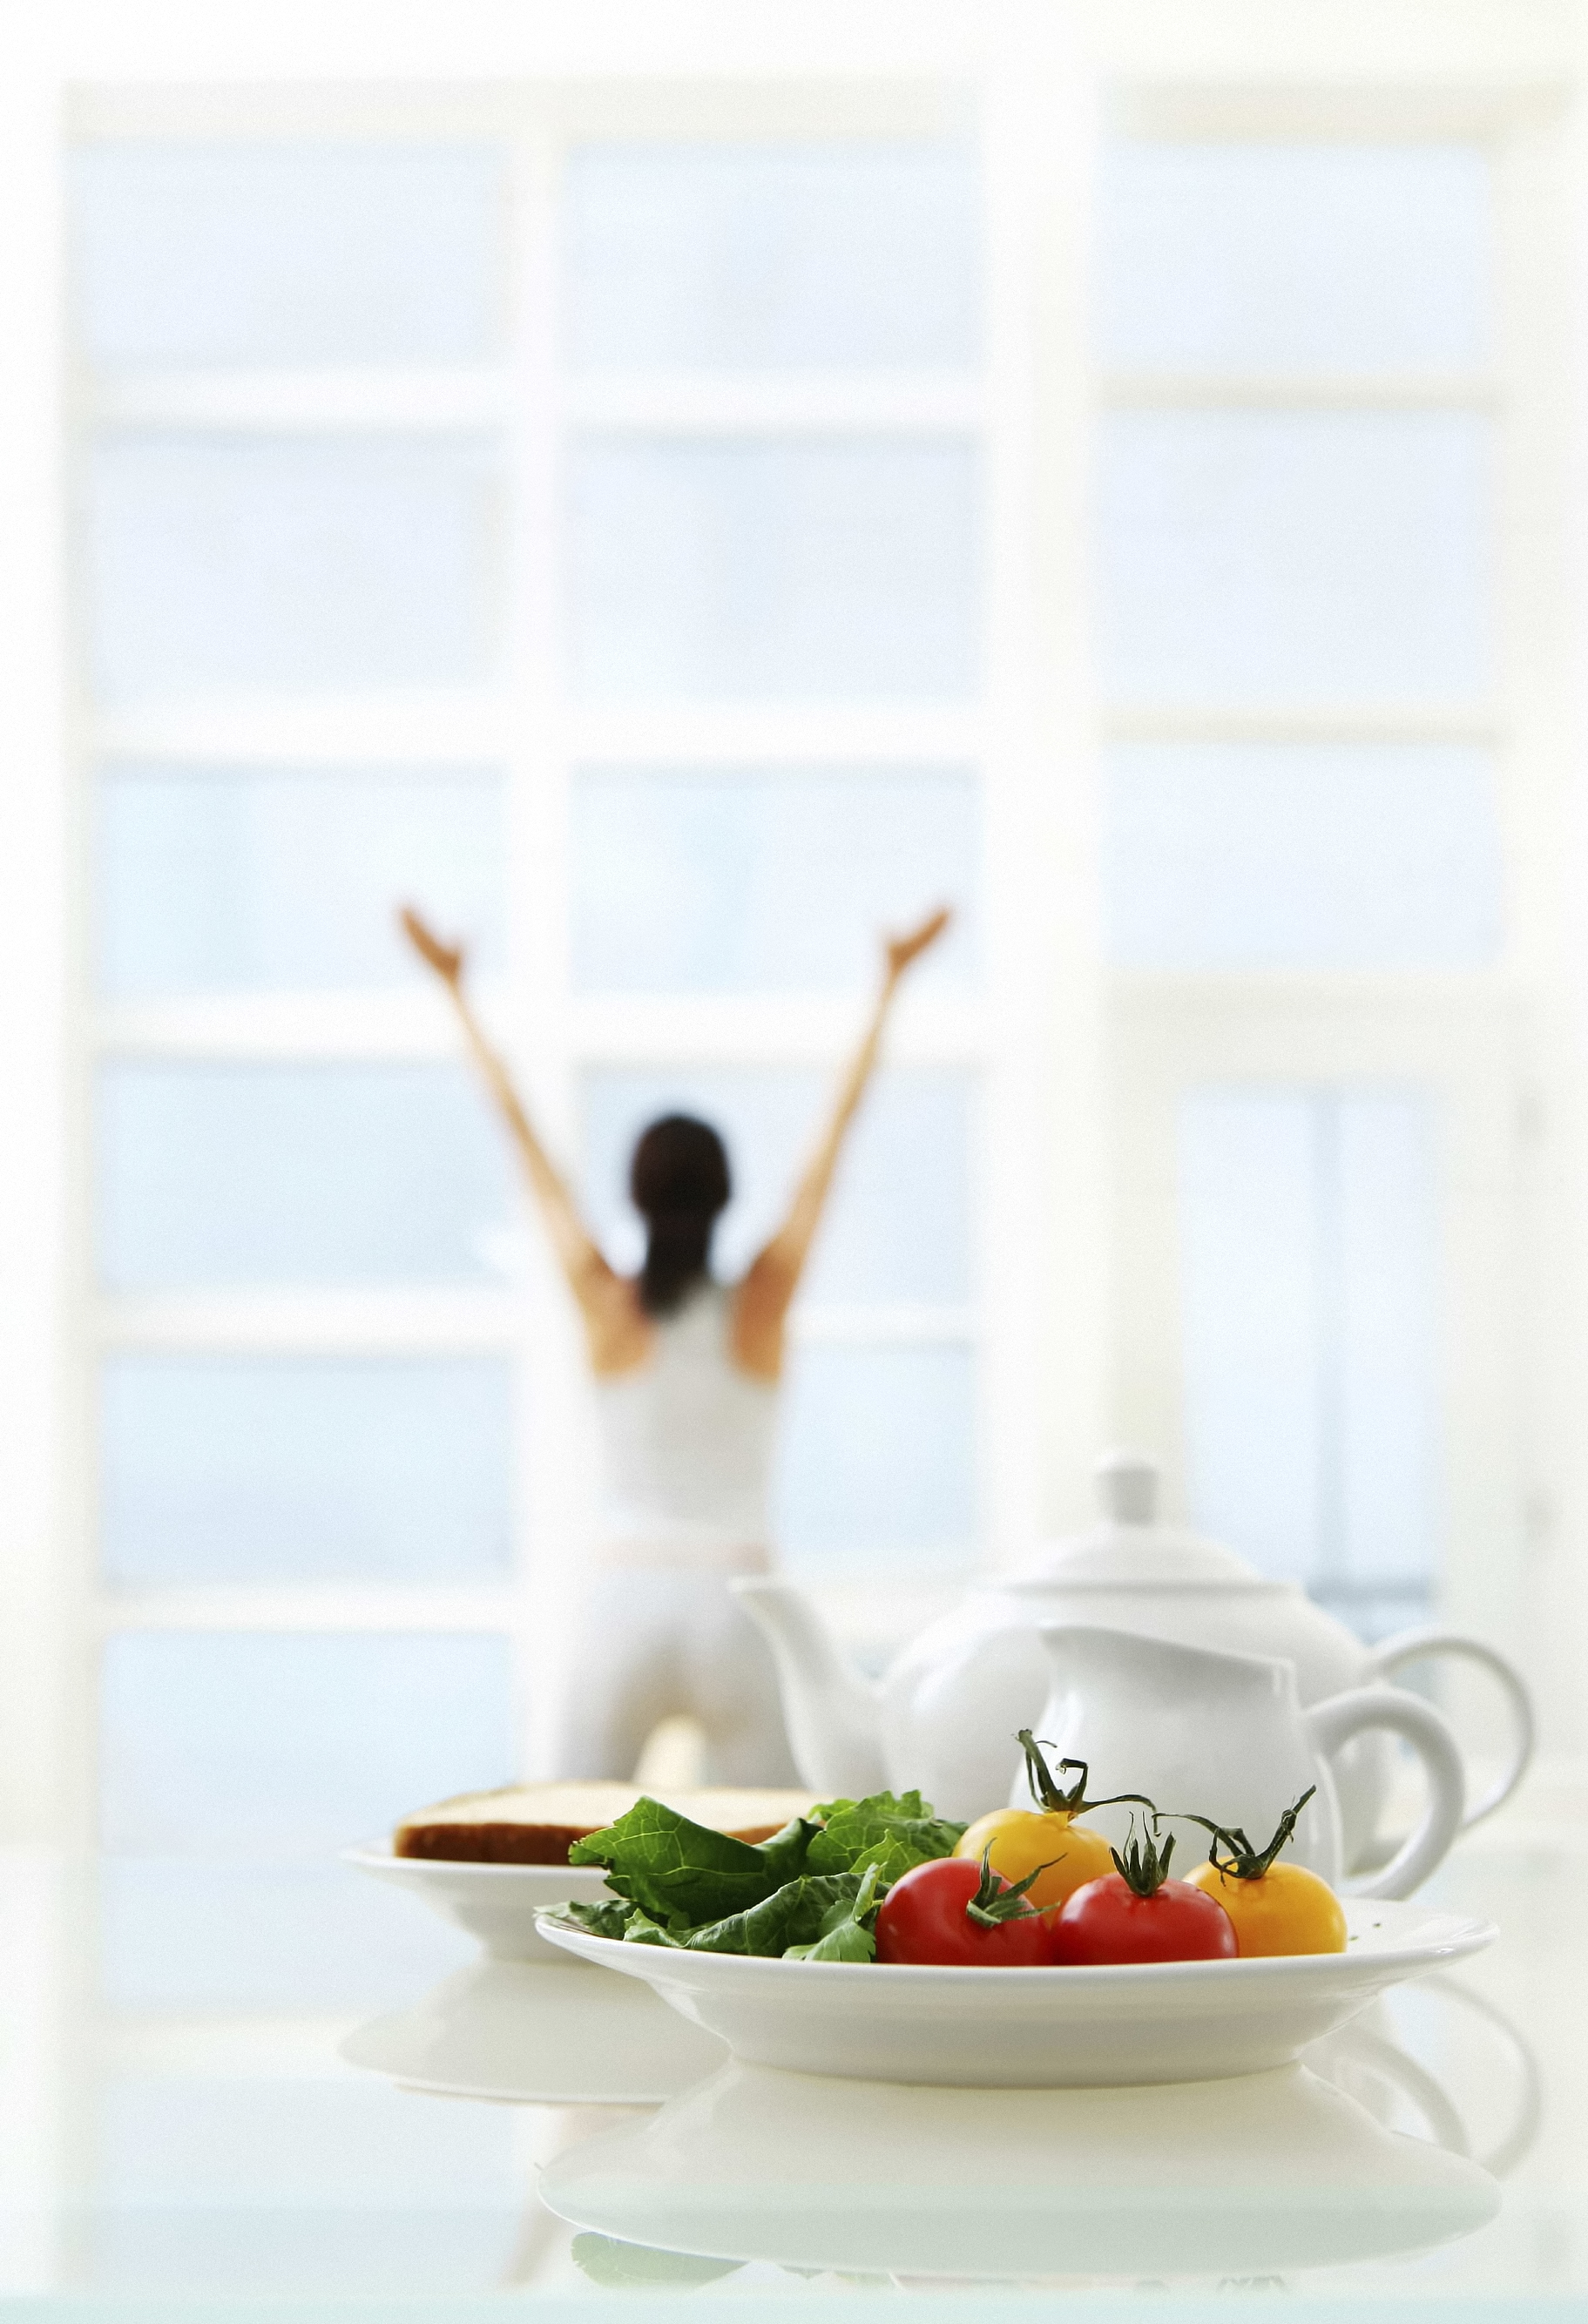 weight loss and nutrition counseling fort collins